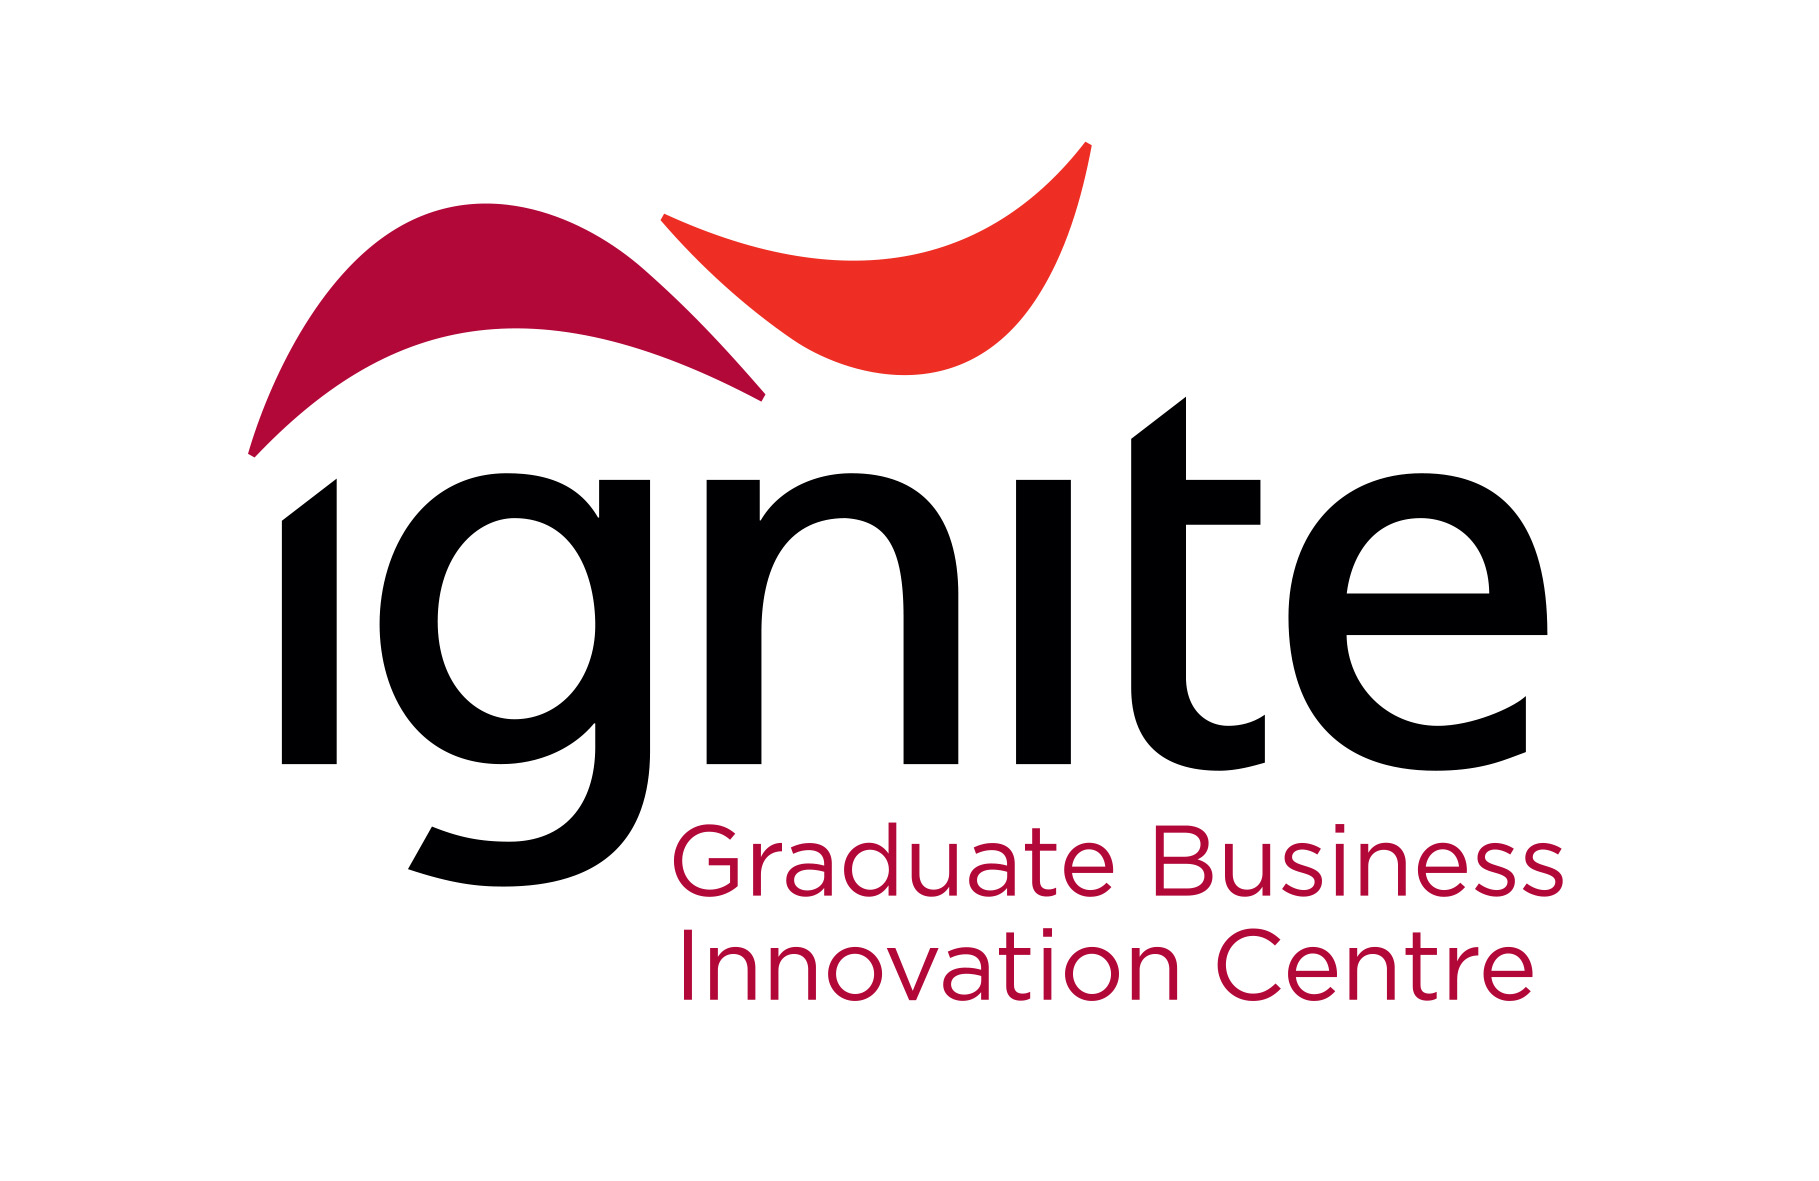 Graduate Business Innovation